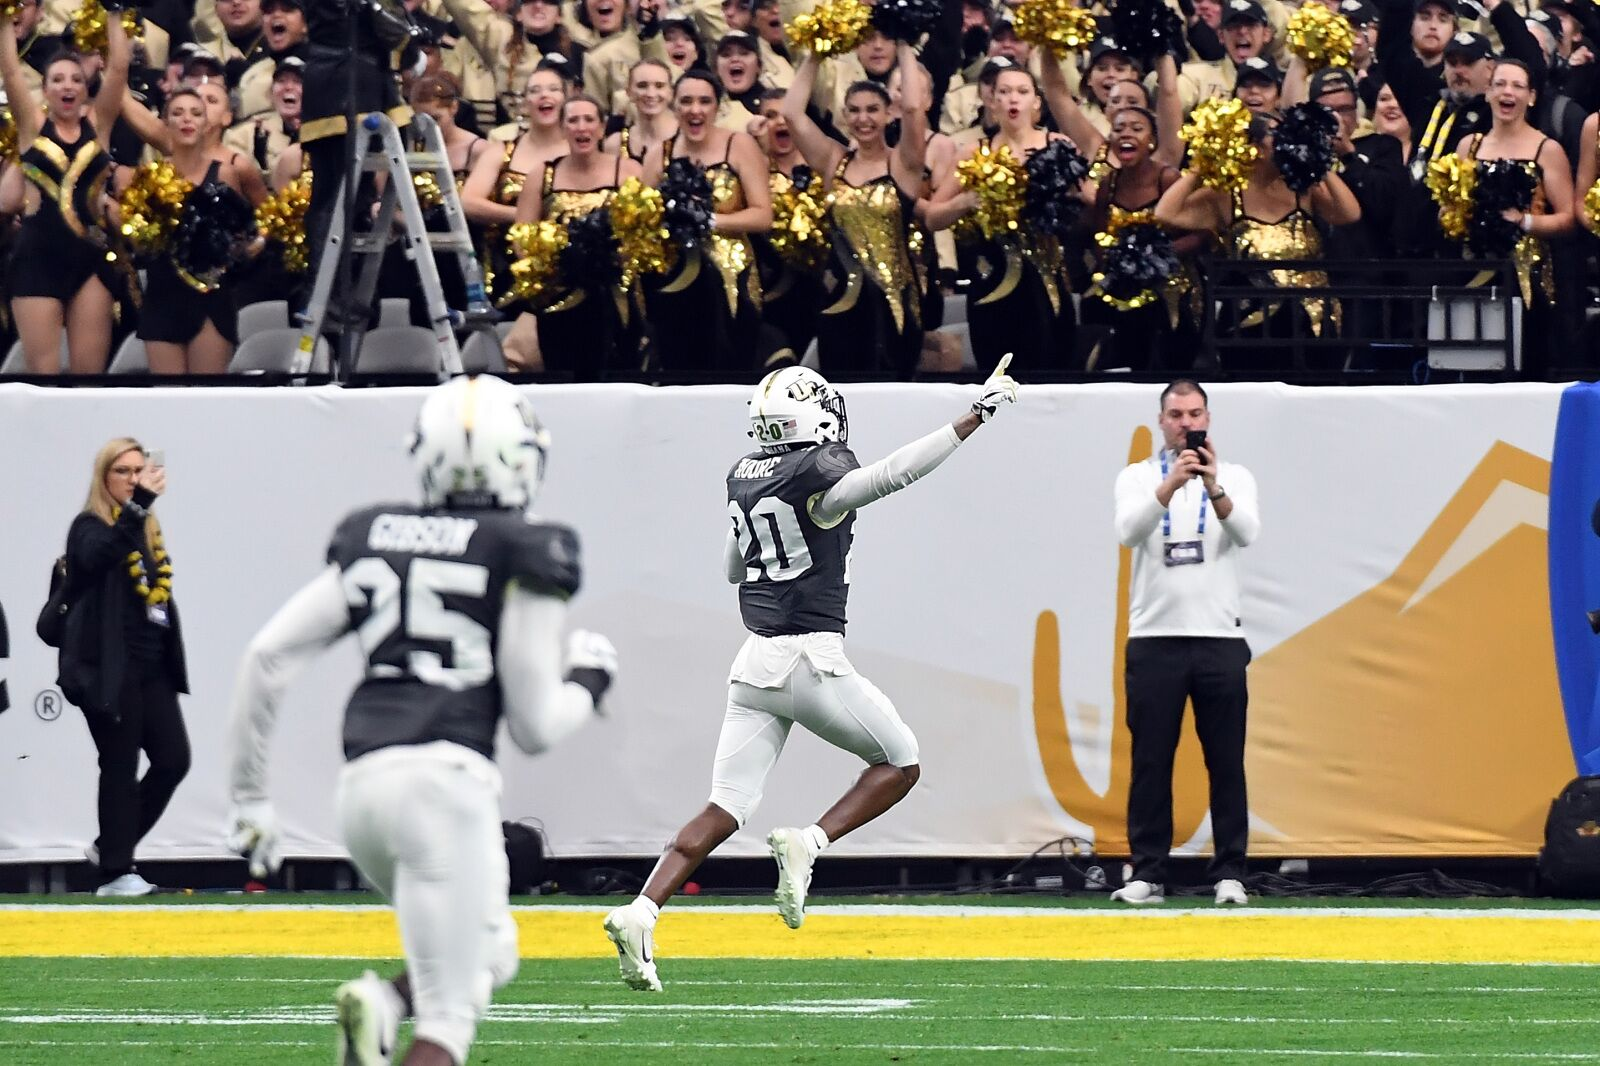 UCF Football: How will Brandon Moore's injury affect Knights?